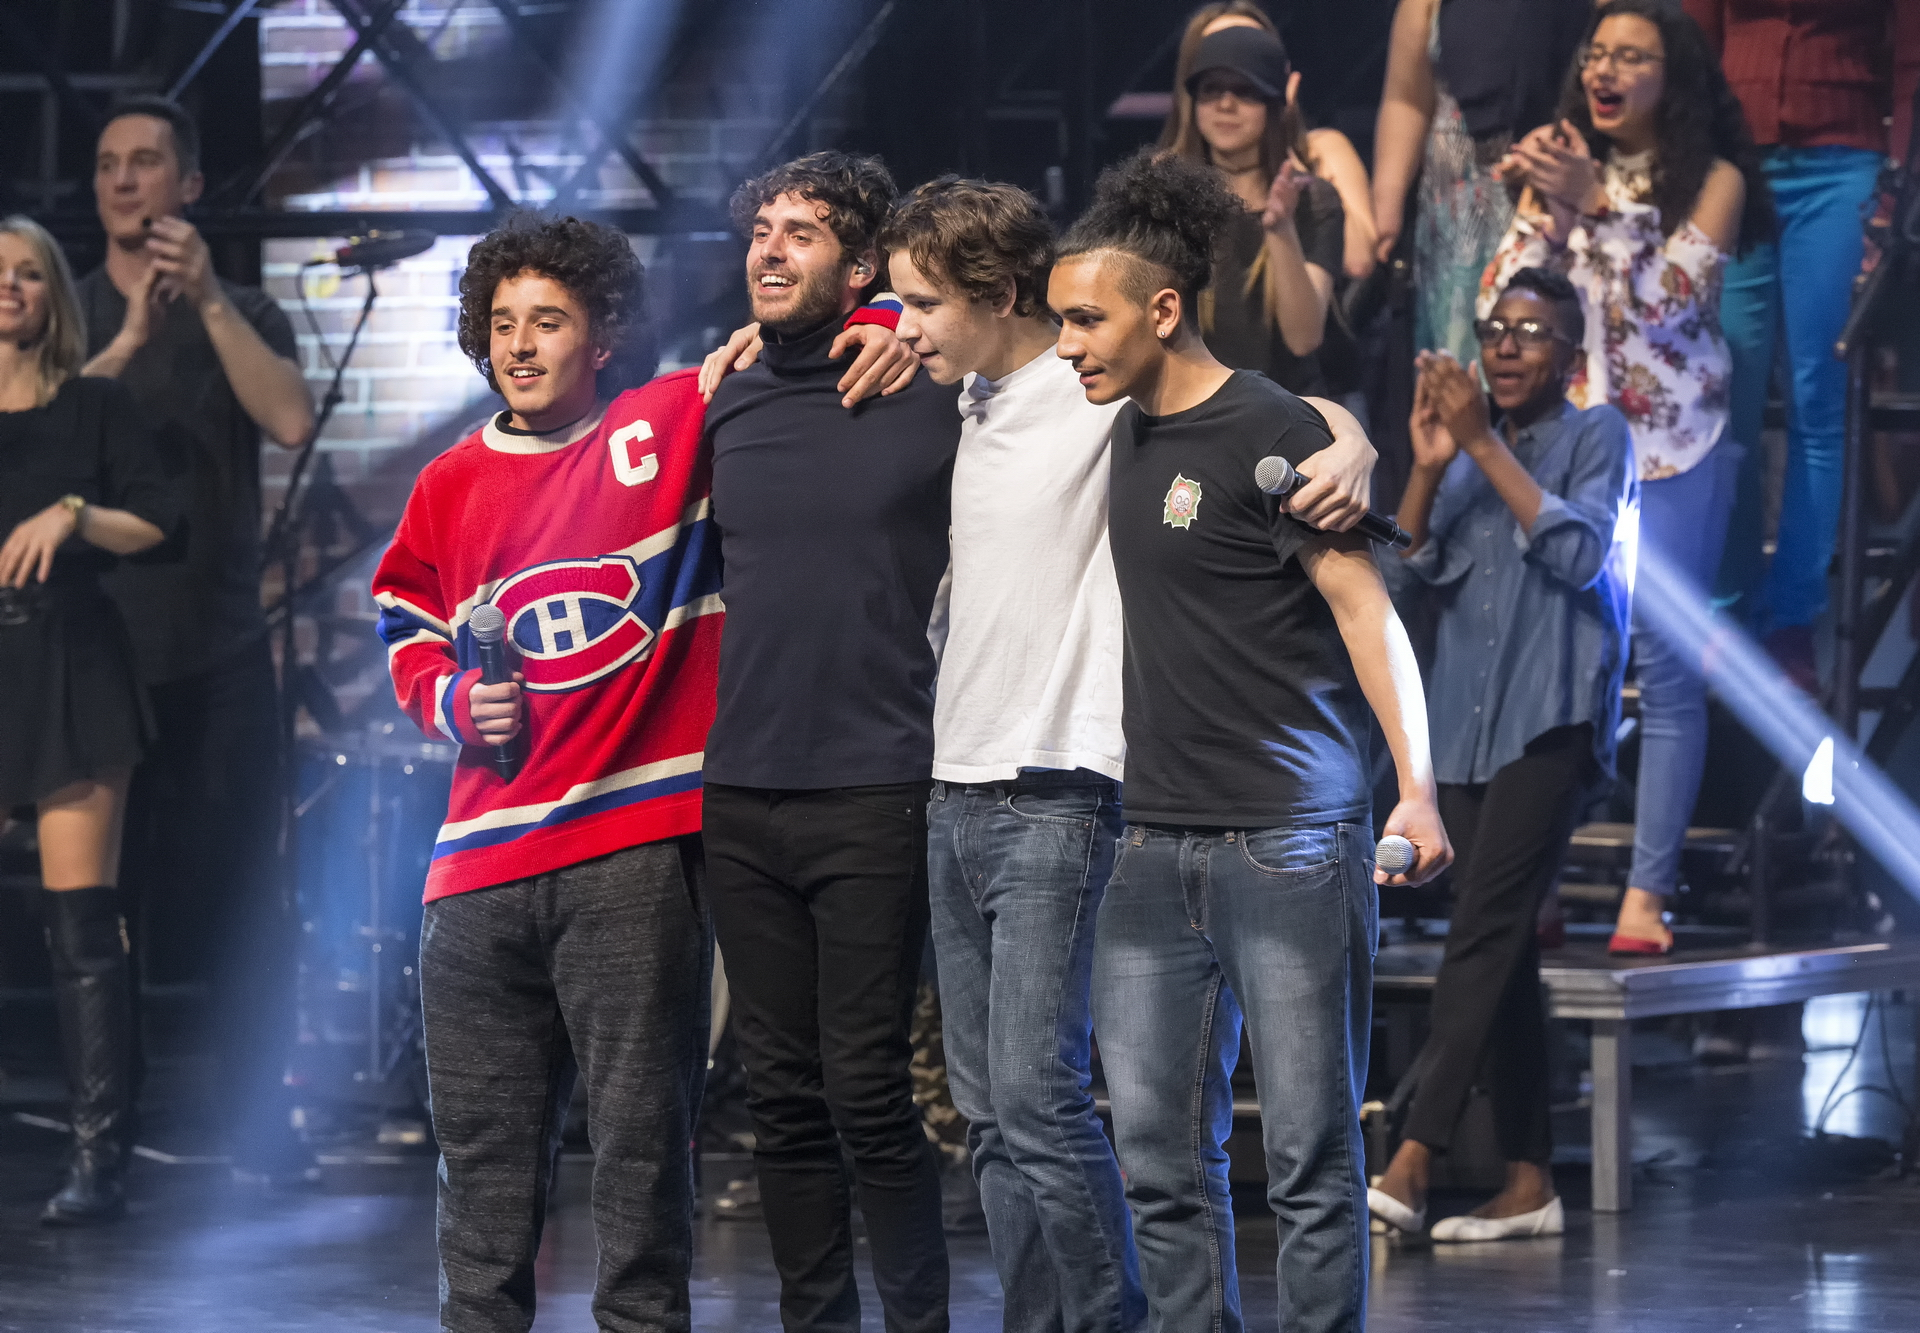 On May 12, our kids will rock the Place des Arts with  Marc Dupré, La Bronze, Ludovick Bourgeois, Travis Cormier and Margau!